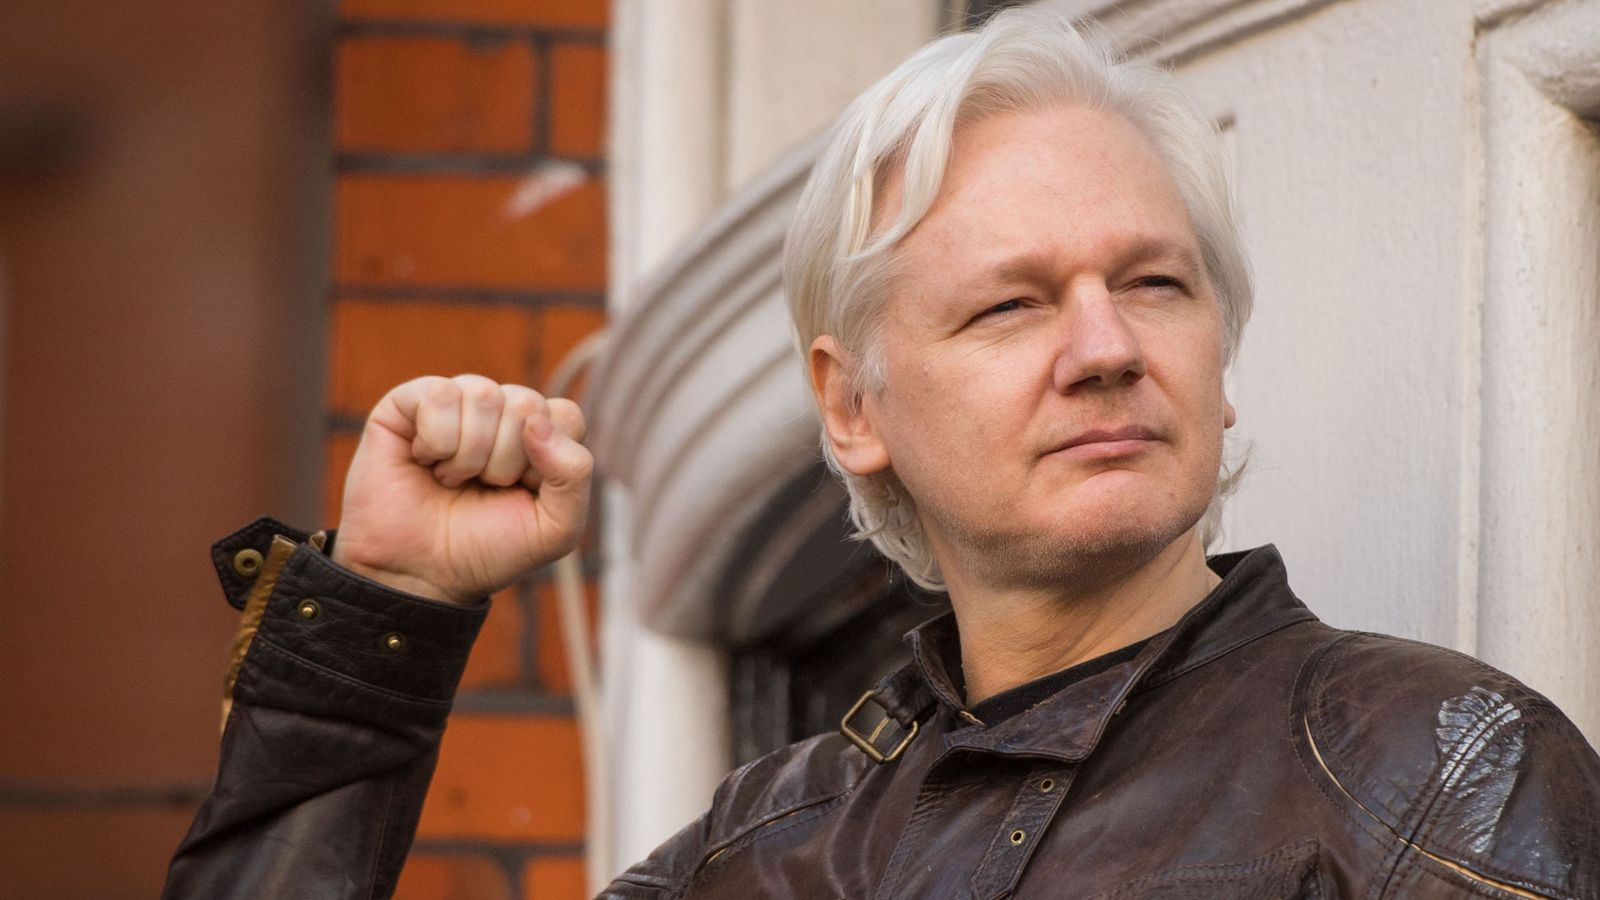 WikiLeaks: Julian Assange to be expelled within hours to days